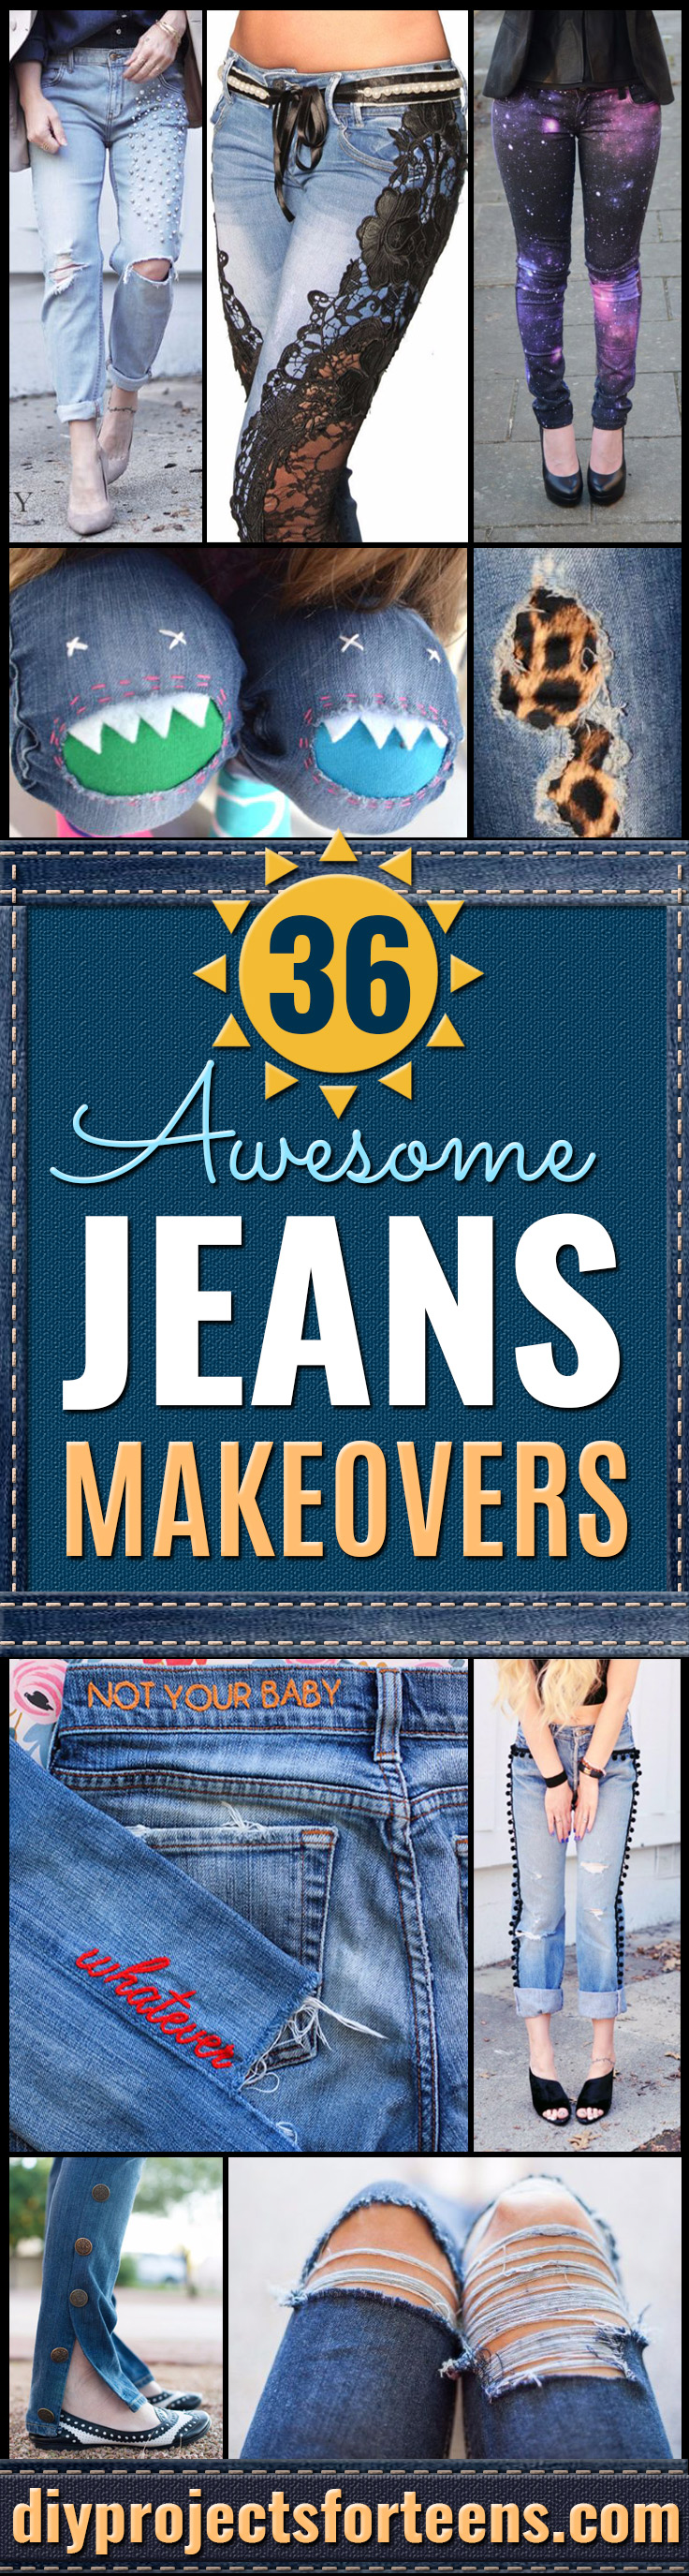 DIY Jeans Makeovers - Easy Crafts and Tutorials to Refashion and Upcycle Your Jeans and Create Ripped, Distressed, Bleach, Lace Edge, Cut Off, Skinny, Shorts, Skirts, Galaxy and Painted Jeans Ideas - Cool Denim Fashions for Teens, Teenagers, Women #diyideas #diyclothes #clothinghacks #teencrafts